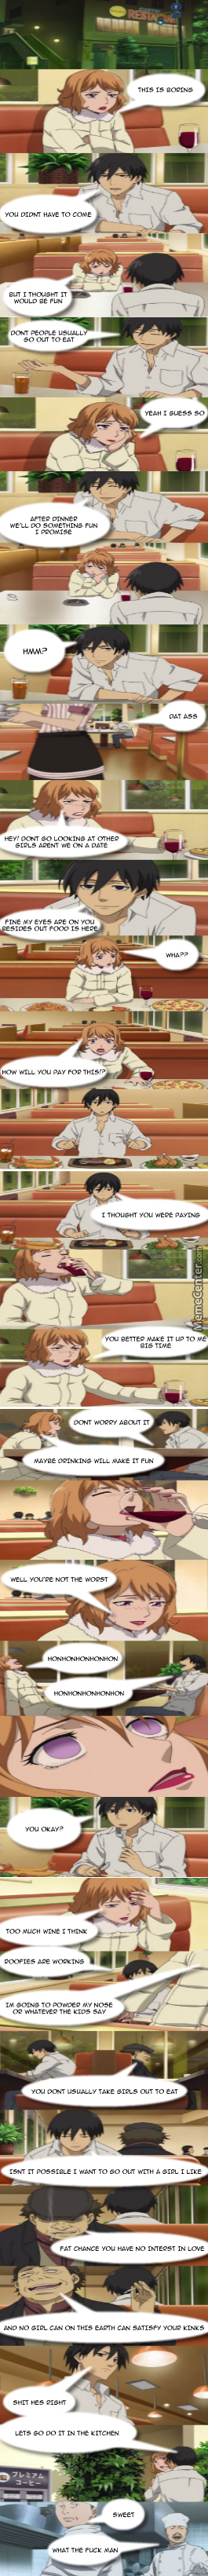 Me On A Date (Sorry Its Compressed At Full Size Would Be 9000 Pixels So This Is My Longest Post Cool Beans)